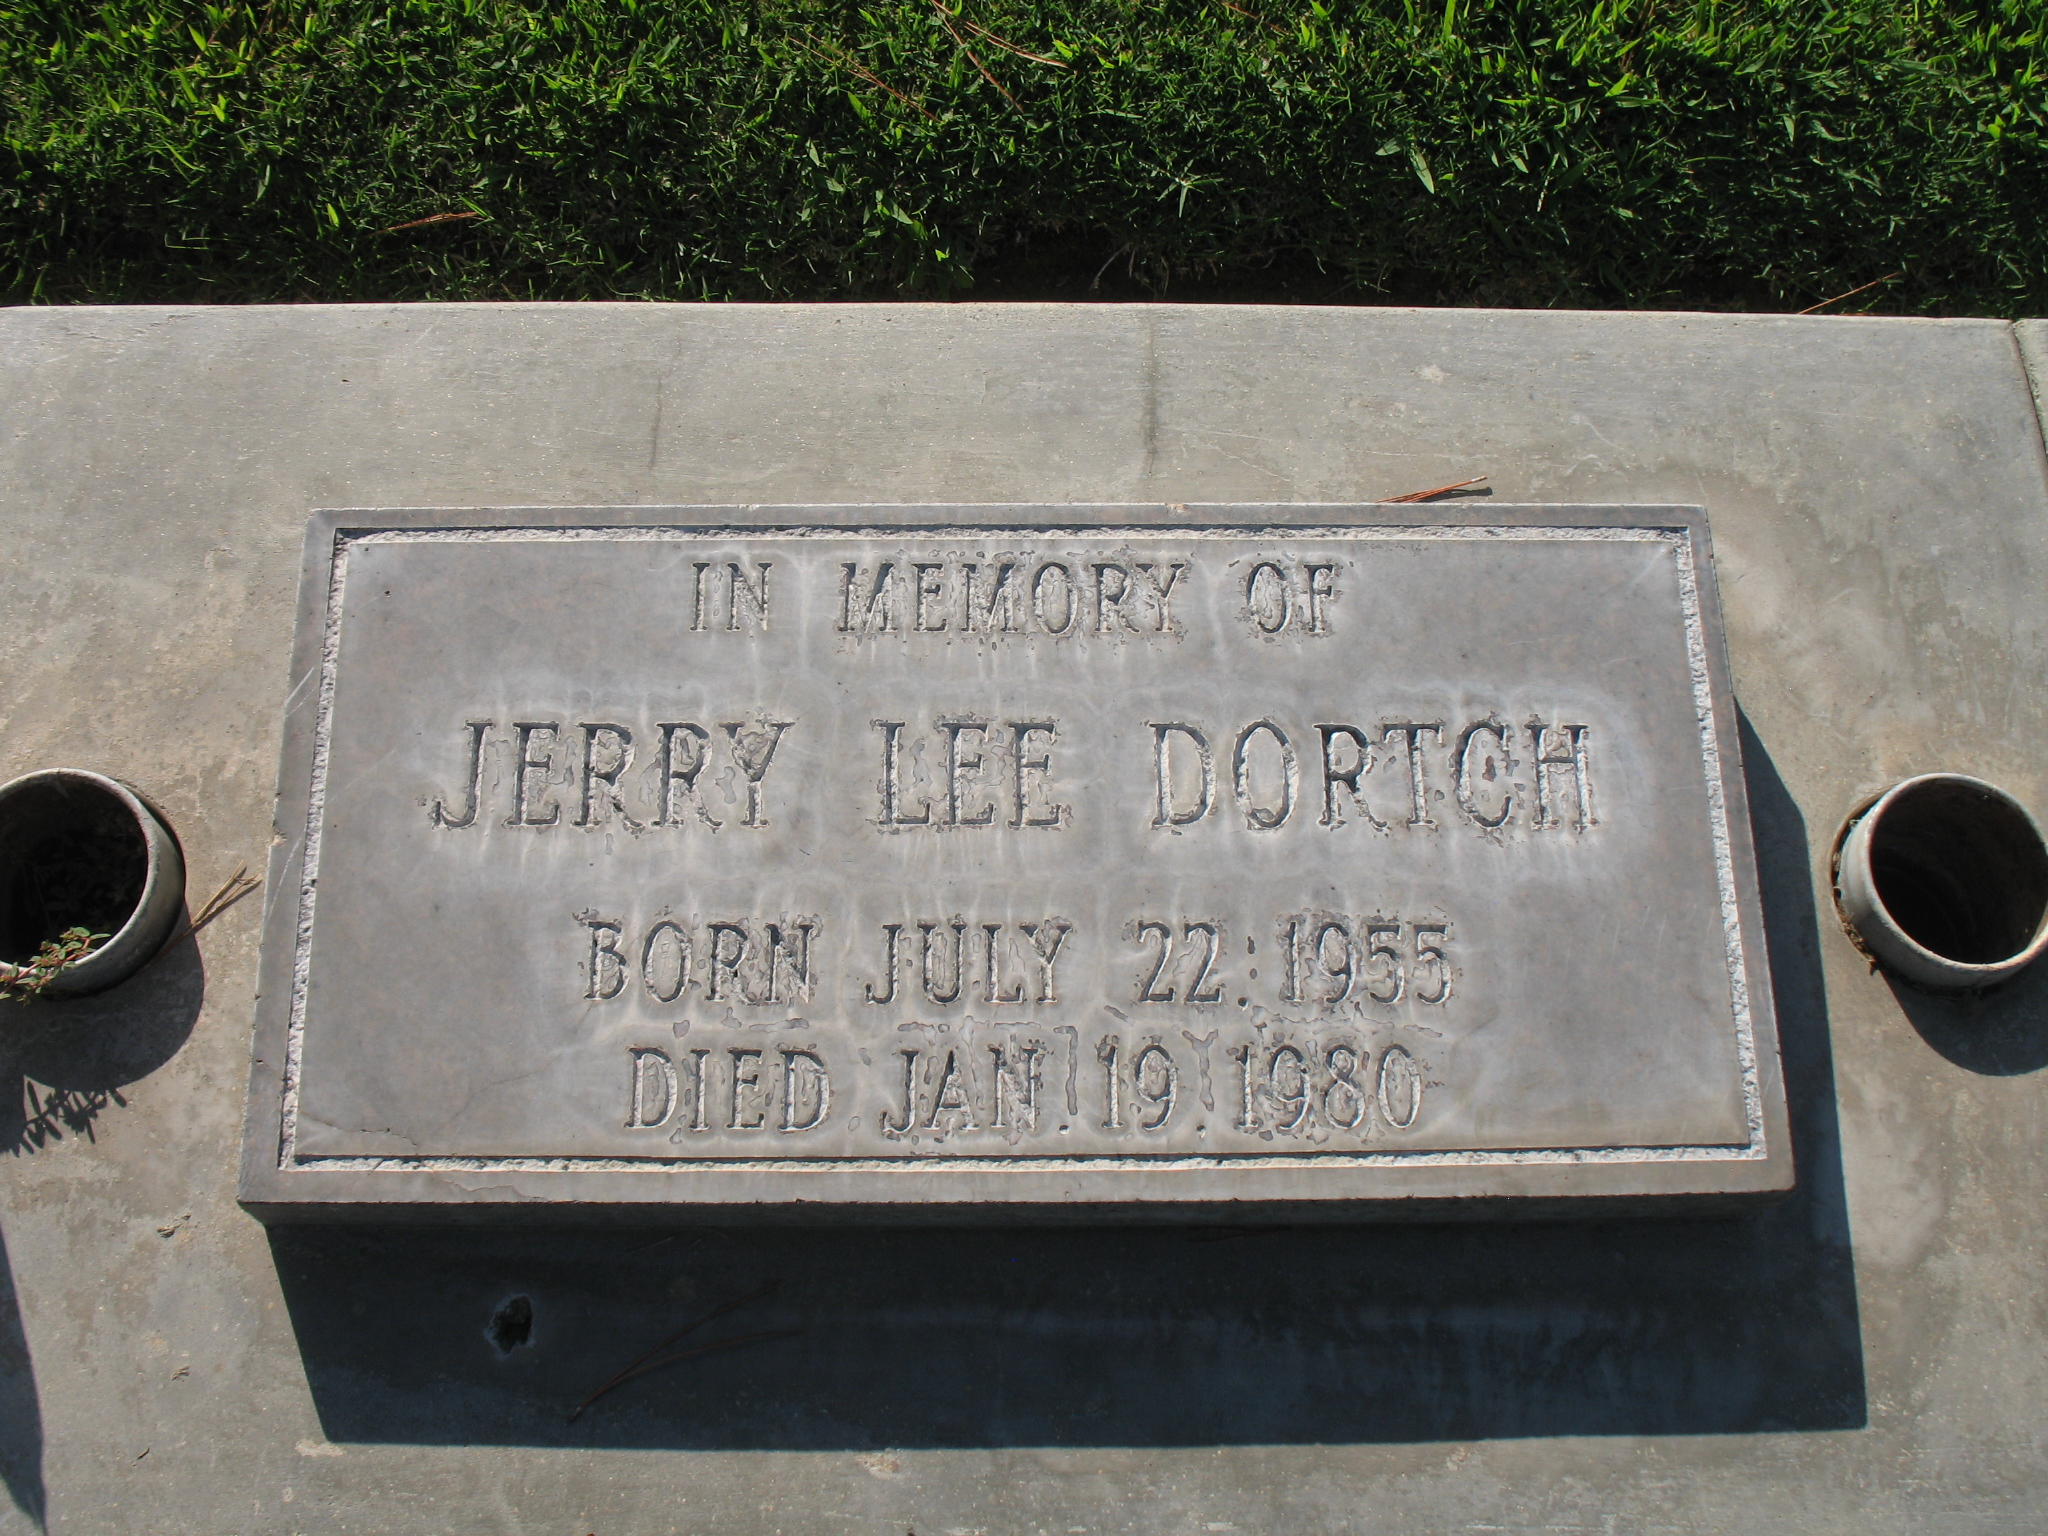 Jerry Lee Dortch